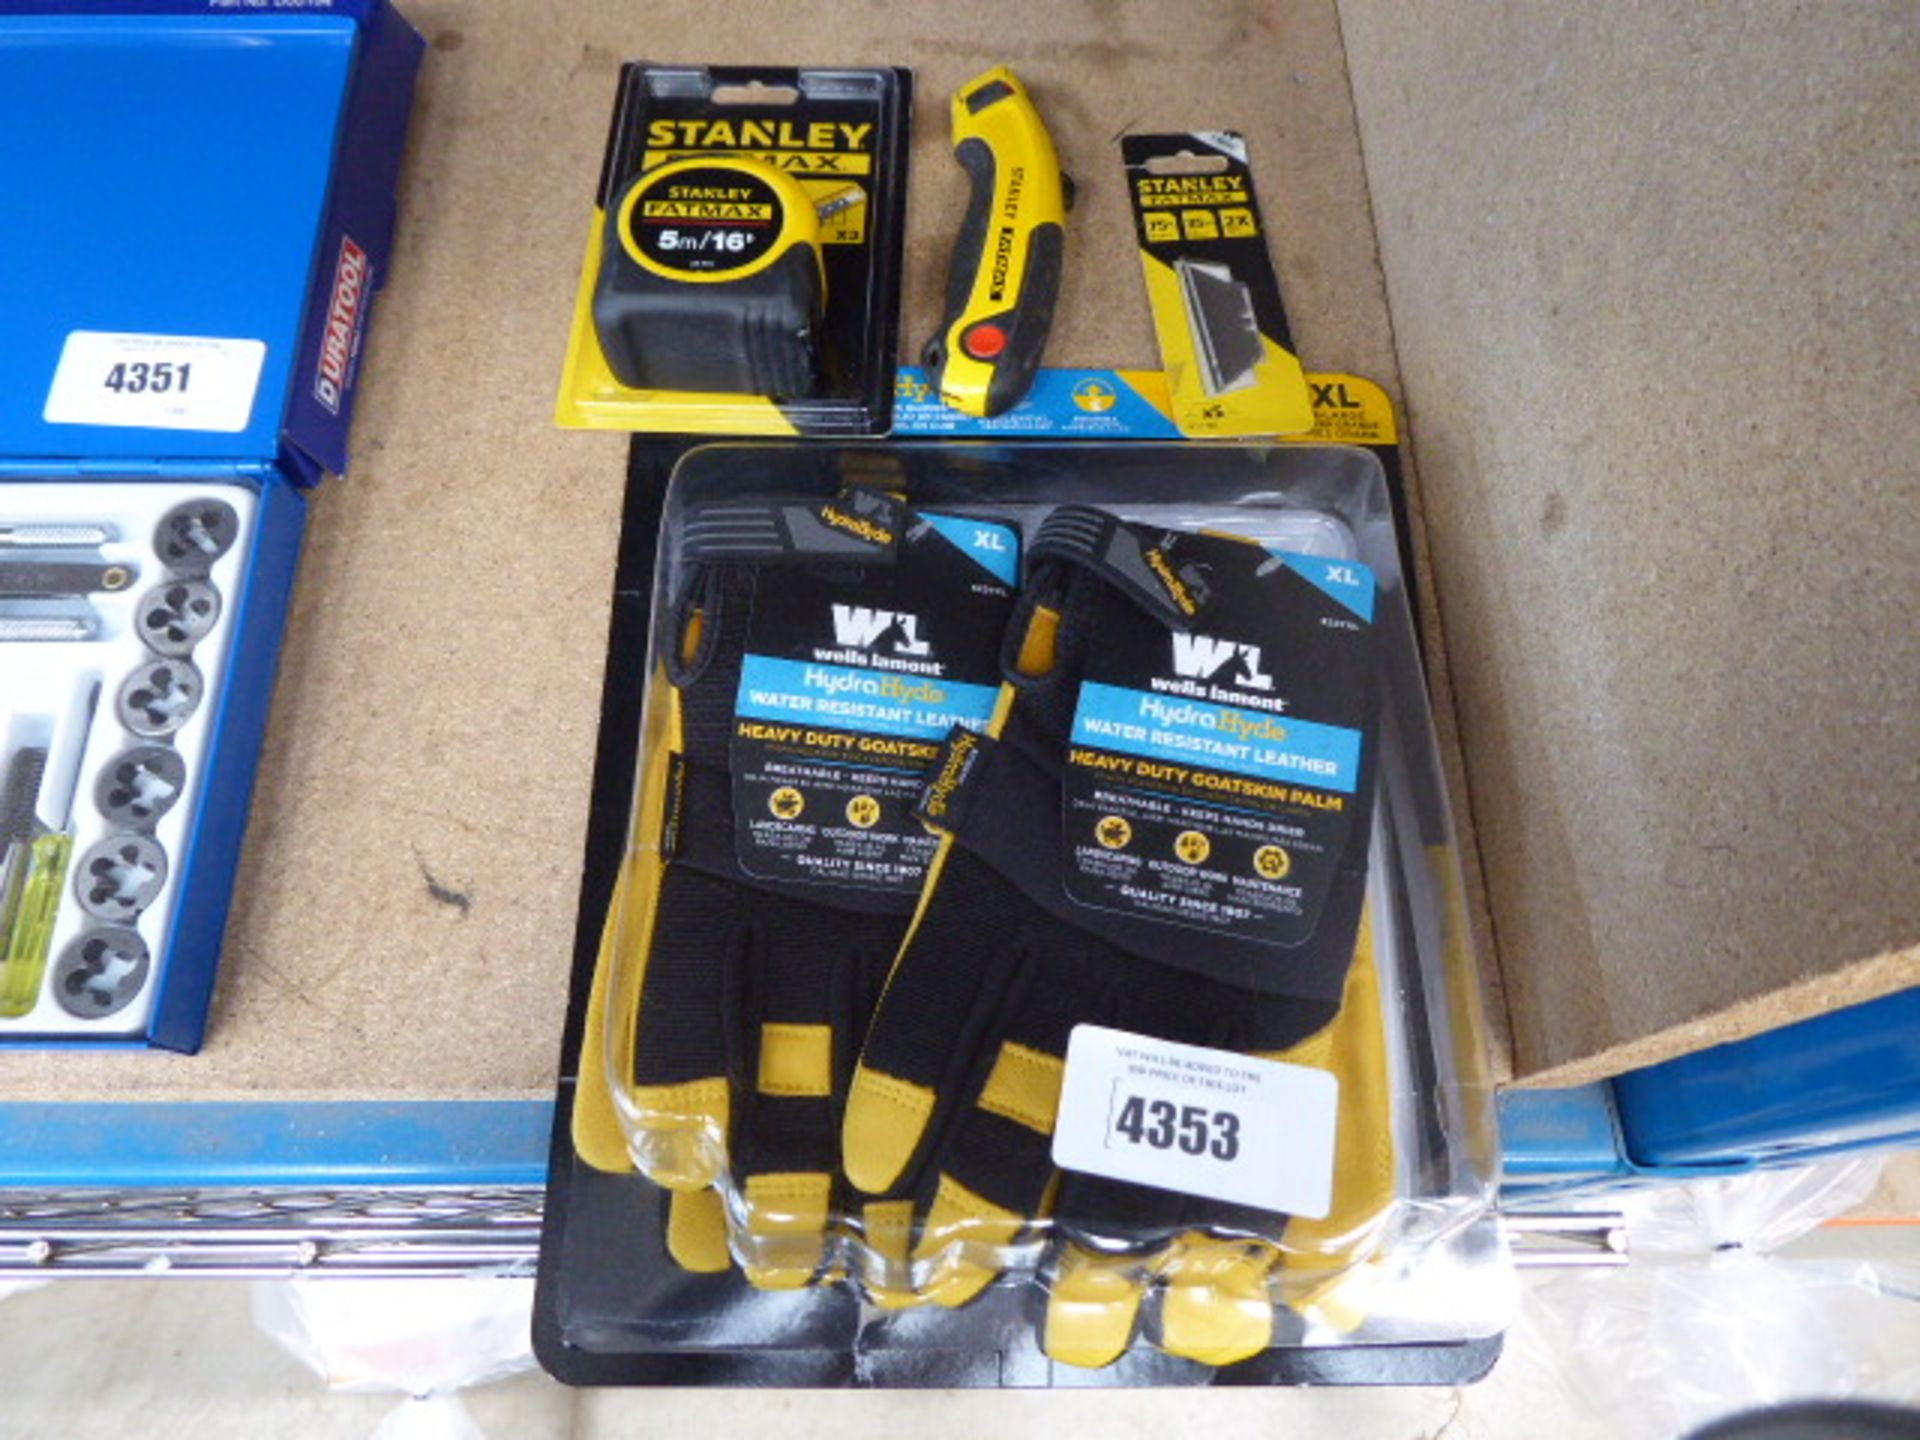 Stanley tape measure, knife, work gloves, golfing gloves and some LED mini lights